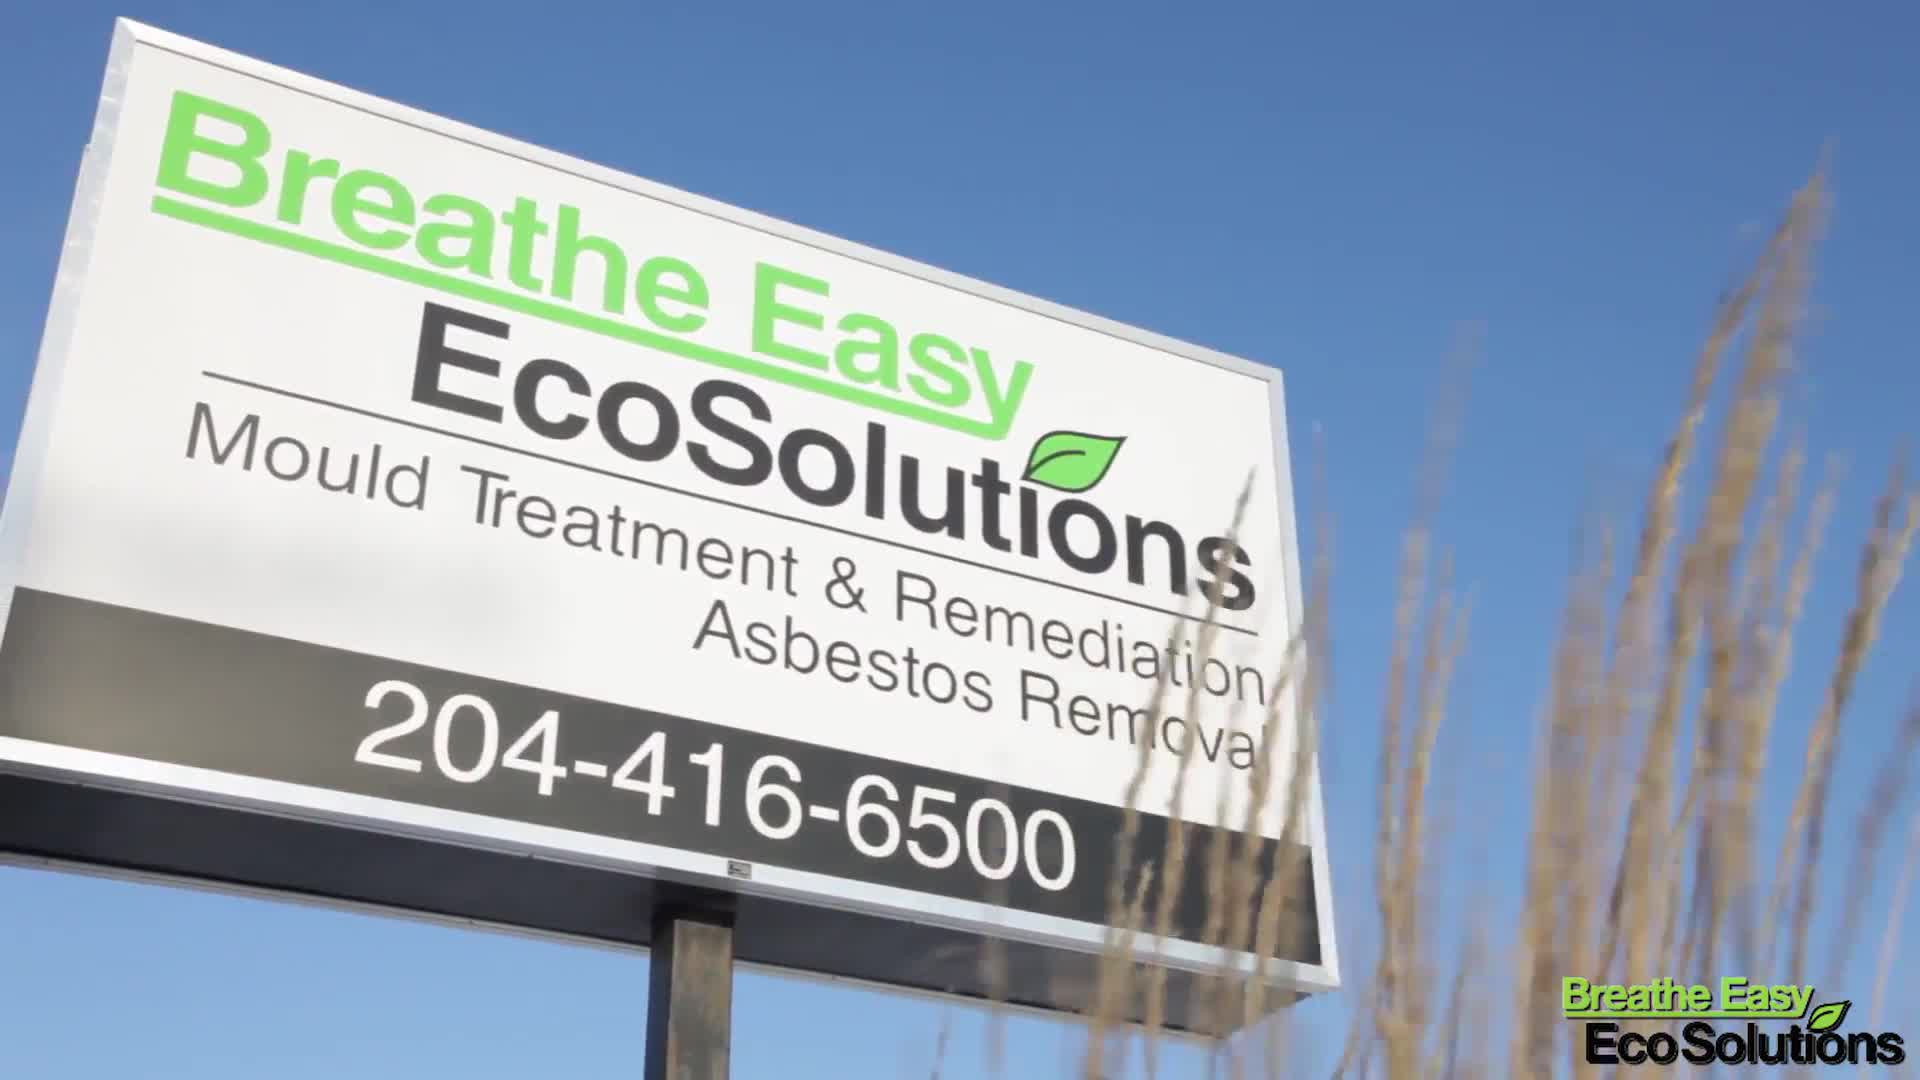 Breathe Easy Eco Solutions - Mould Removal & Control - 204-416-6500